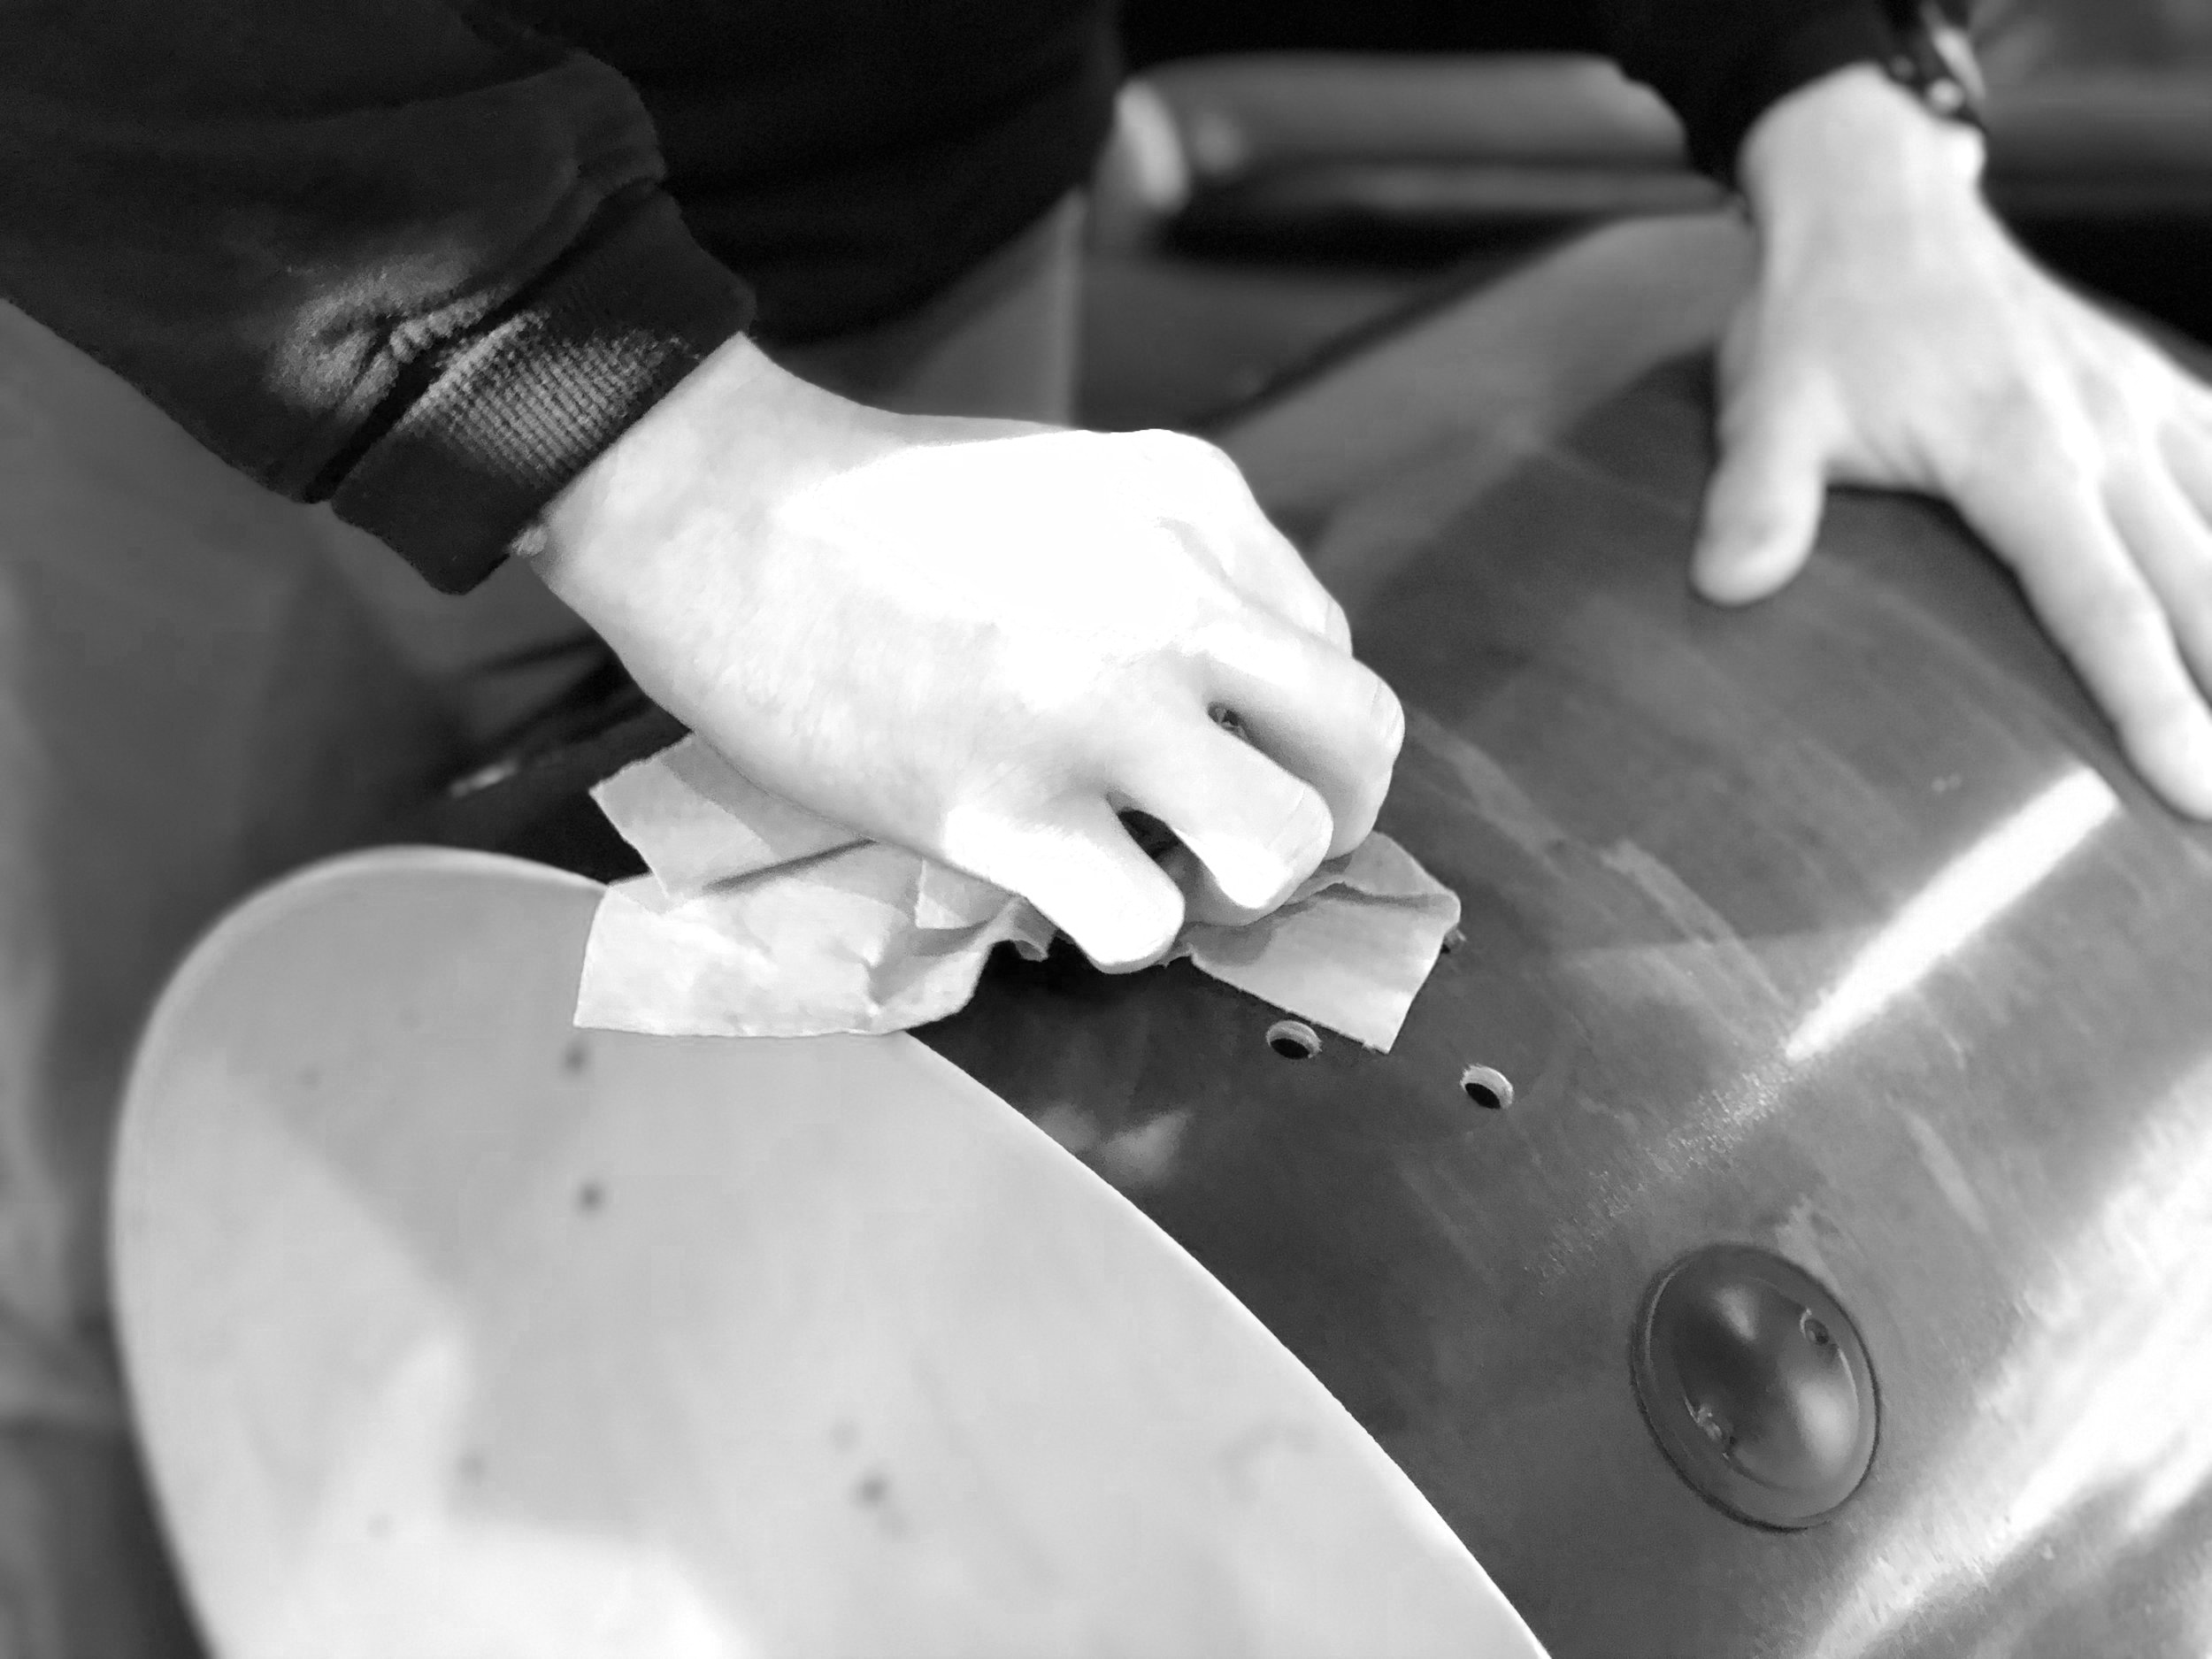 MAINTENANCE & REPAIRS - Show your drums some love with a tune up, deep clean, or restoration!